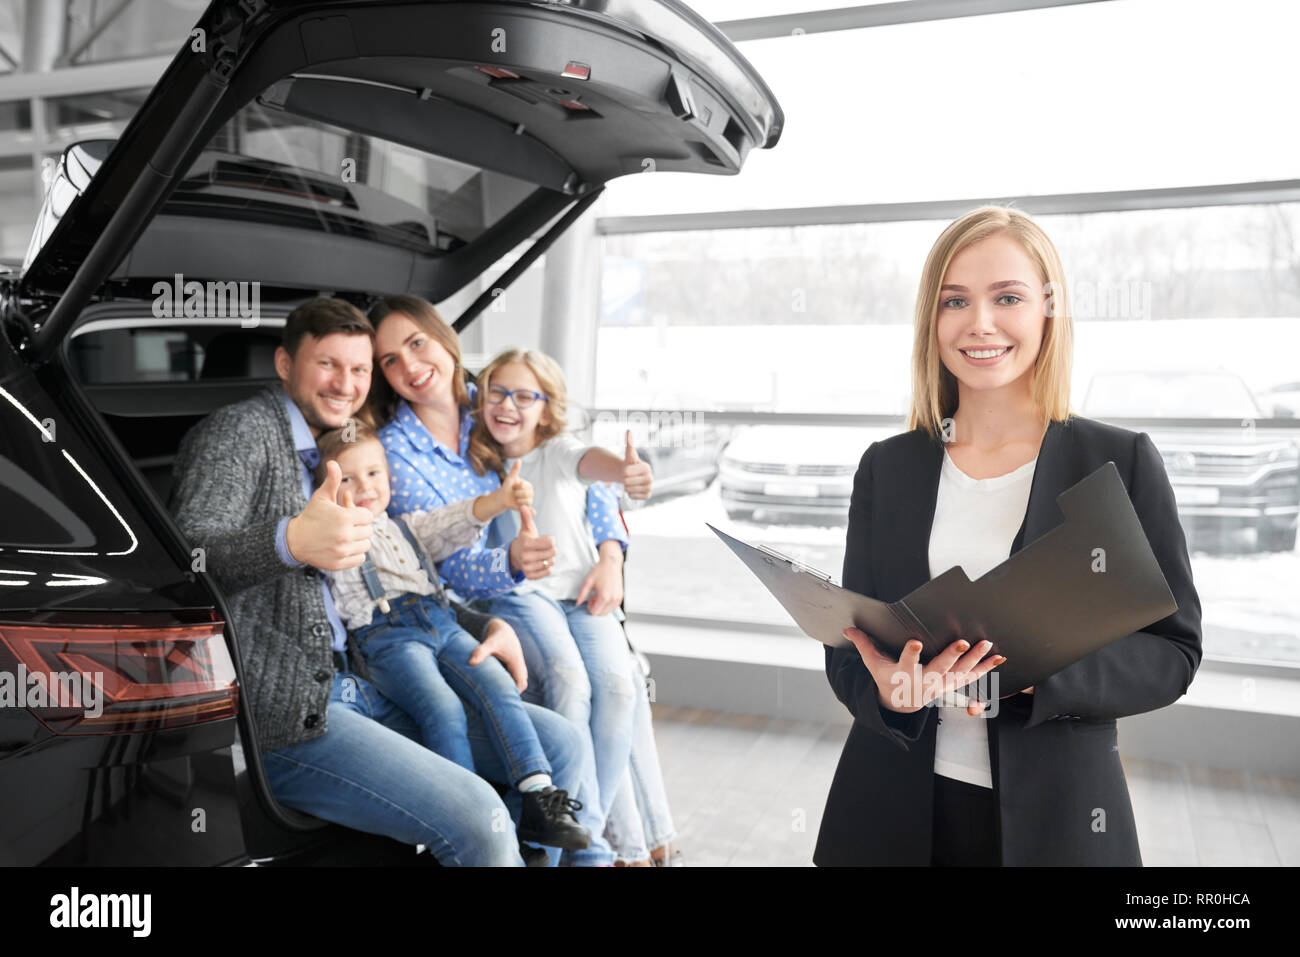 Car dealer, beautiful blonde woman standing, holding folder and posing. Happy family sitting in car trunk, smiling, looking at camera and showing thumbs up, buyers of automobile. - Stock Image